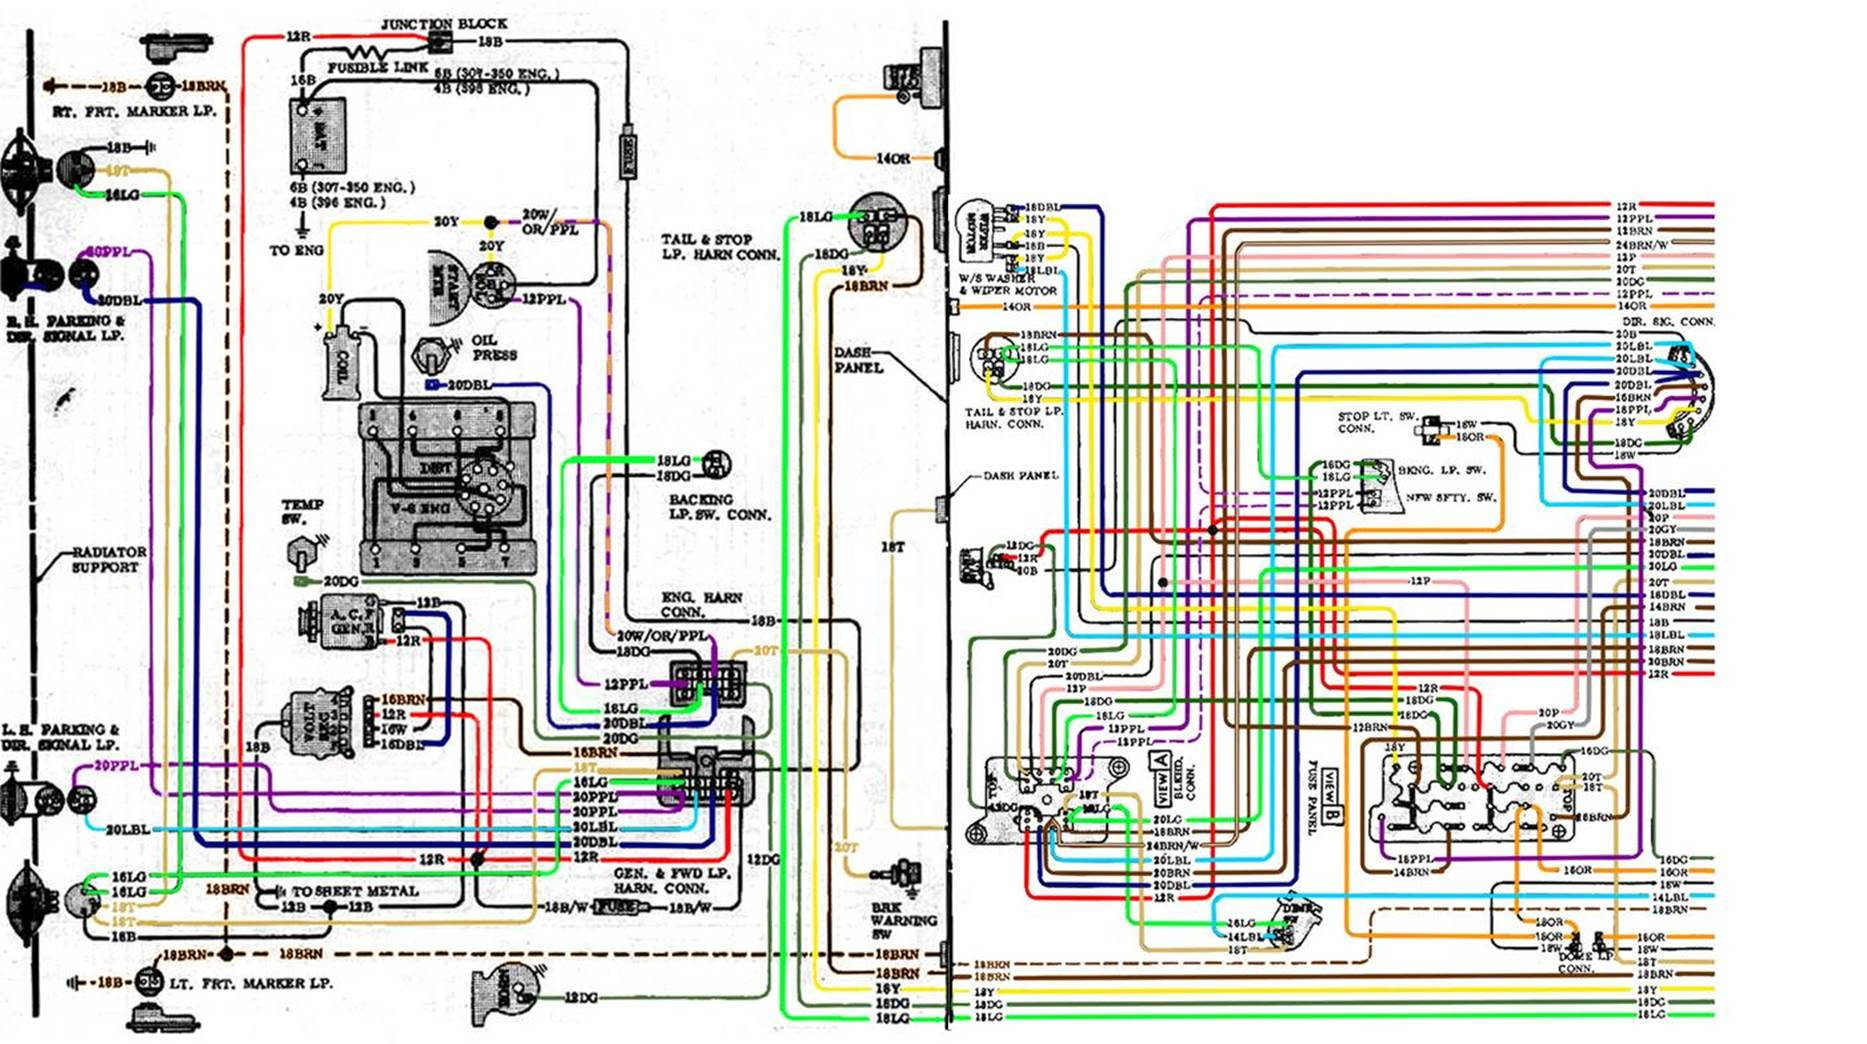 image002 1972 chevelle wiring diagram 1970 chevelle ss dash wiring diagram 1972 chevelle ss wiring diagram at aneh.co